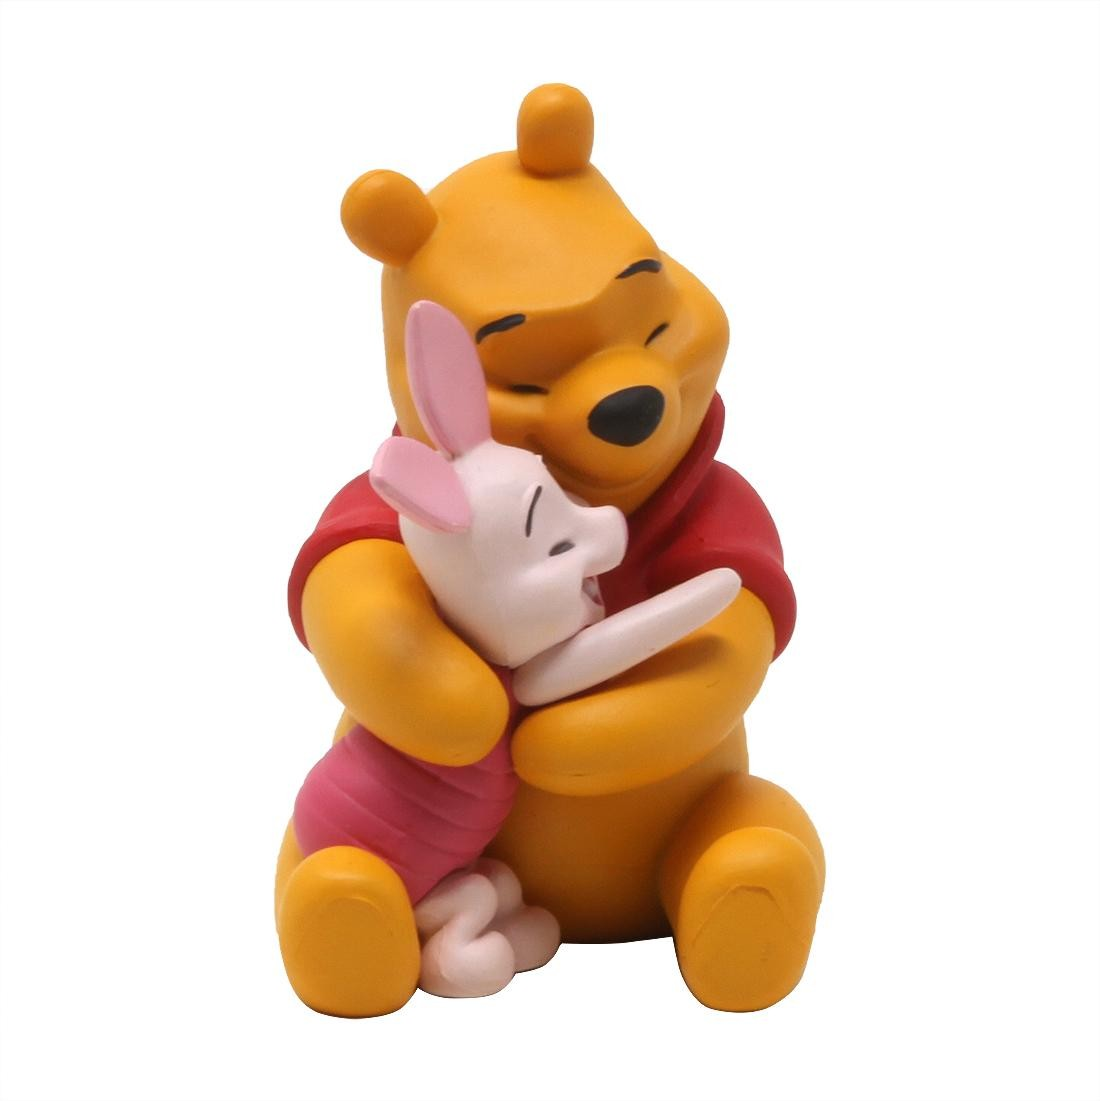 Medicom UDF Disney Series 7 Winnie The Pooh And Piglet Ultra Detail Figure (yellow)